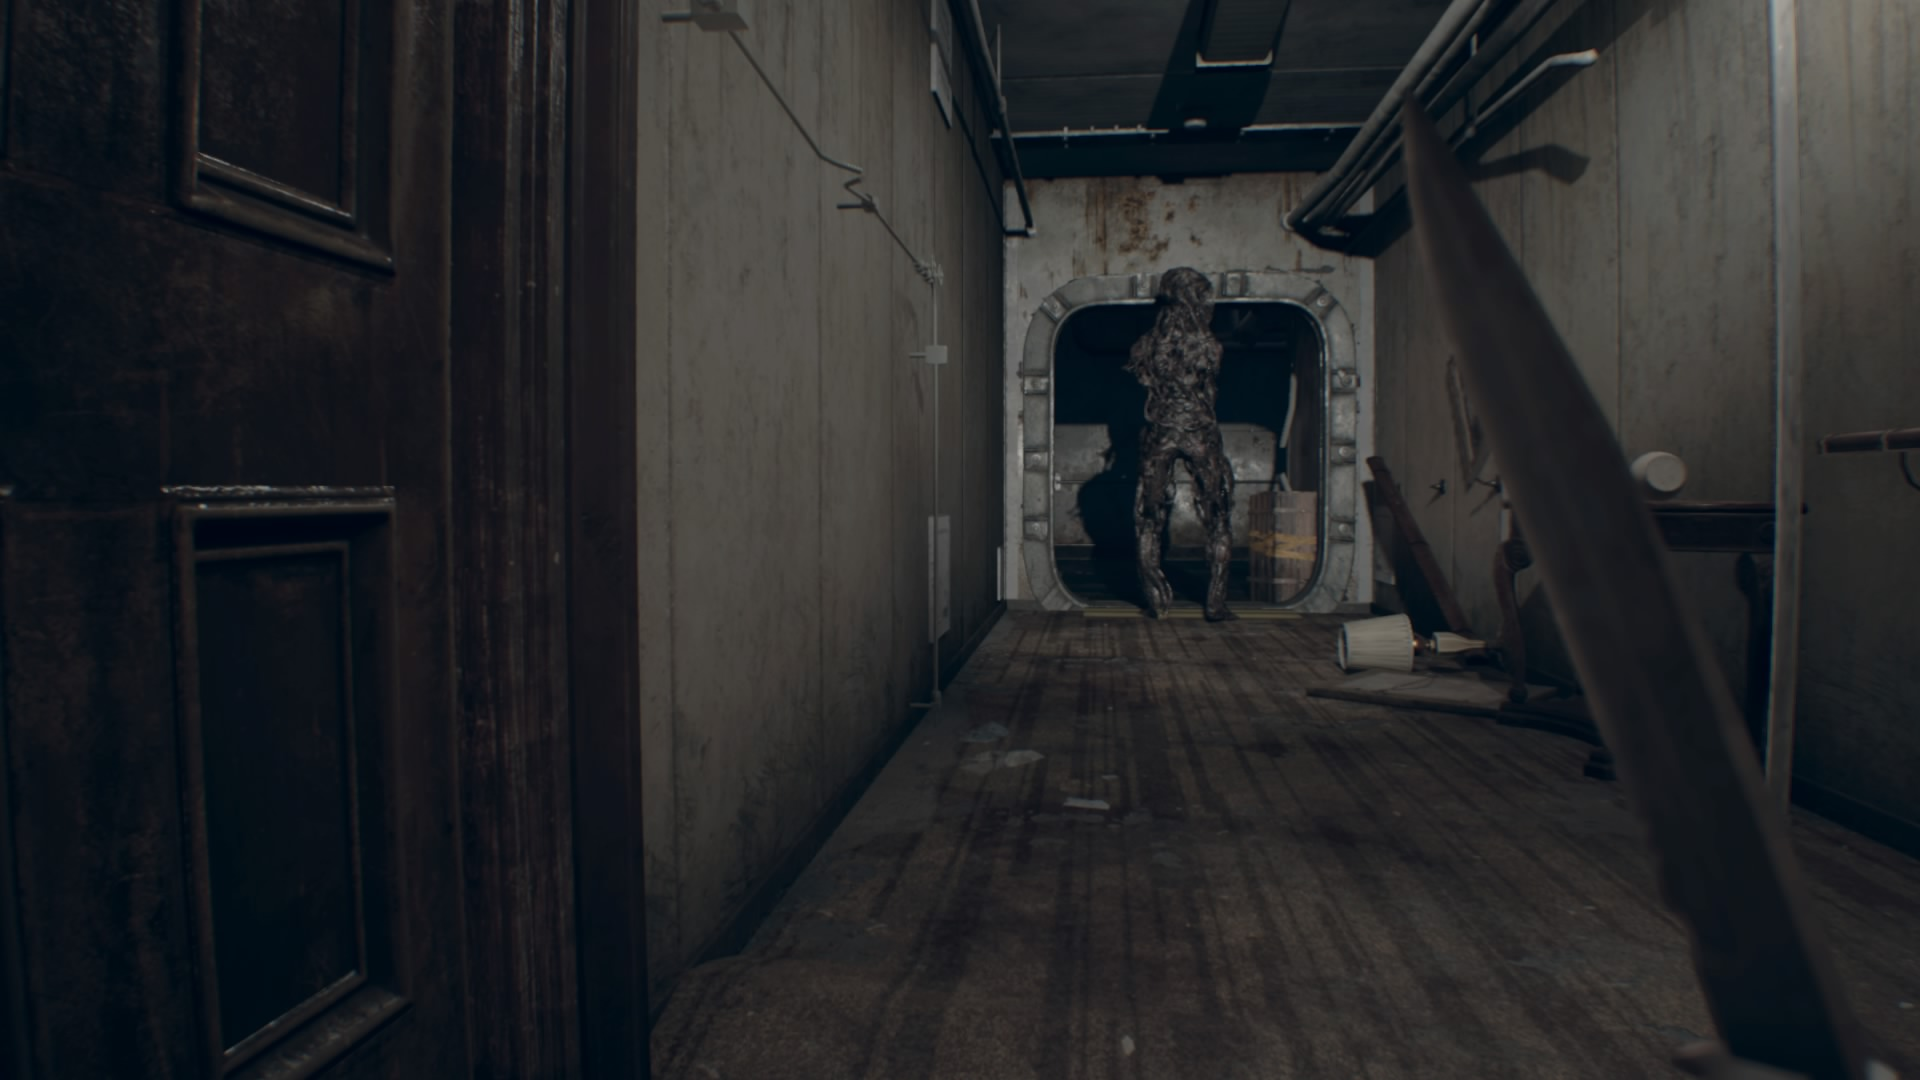 Resident evil 7 biohazard walkthrough 6 0 wrecked ship all turn right and make your way toward the room where the old videotape started crouch when you hit the corner to make sure the armless molded there doesnt rubansaba